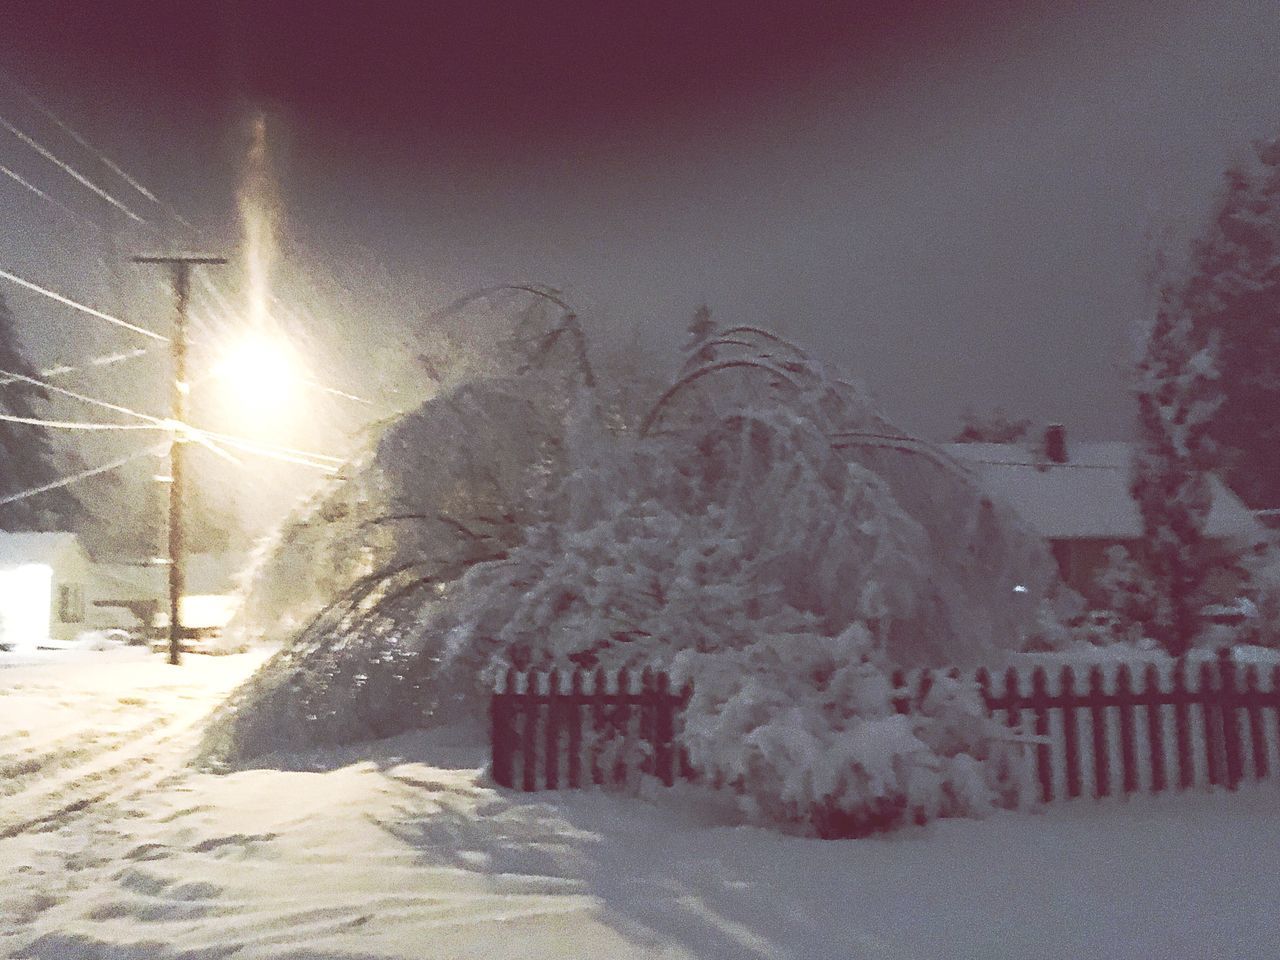 Snow Winter Cold Temperature Weather Tree Outdoors No People Snowing Nature Day